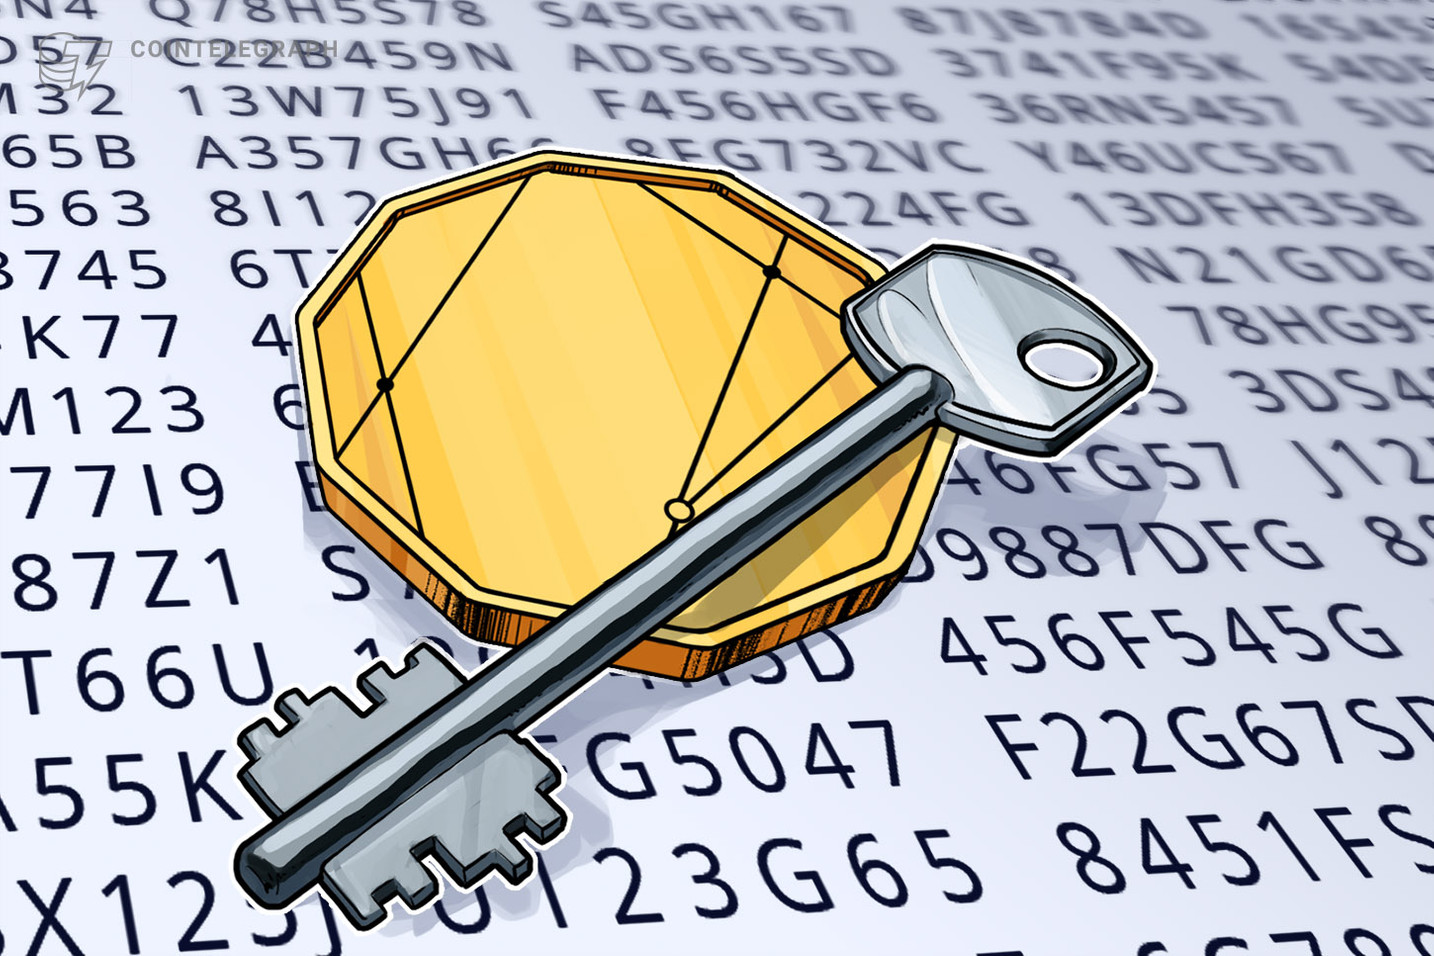 Bank Of America Adds Private Key Storage Filing to Stockpile of Blockchain Patents